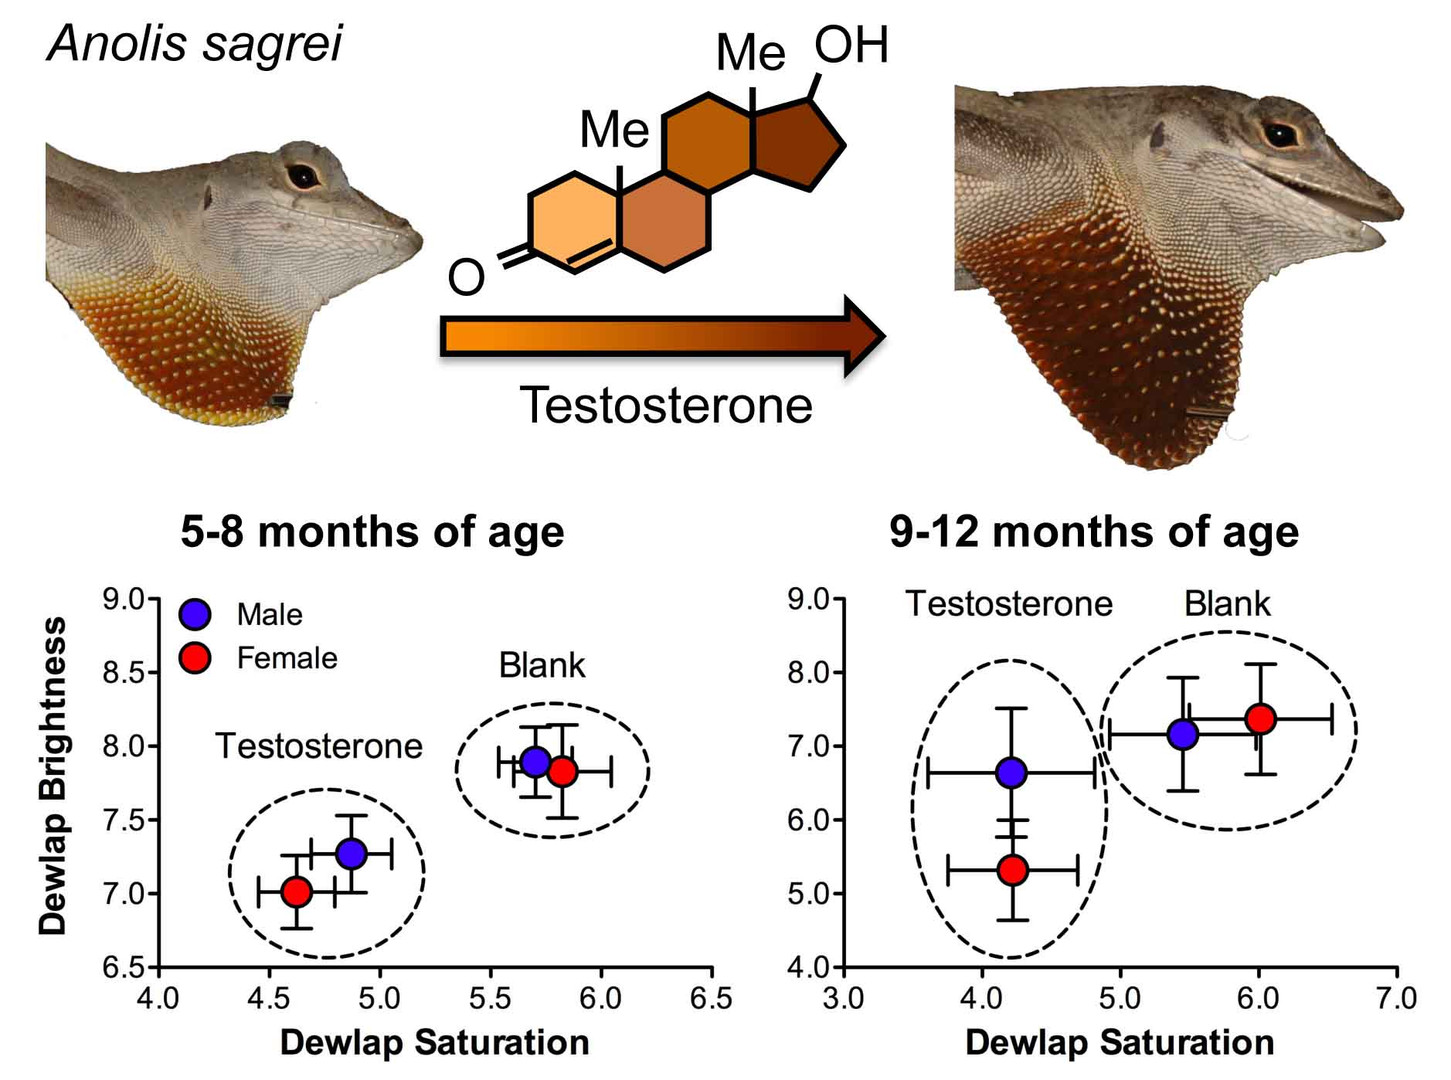 Female anoles retain responsiveness to testosterone despite the evolution of androgen-mediated sexual dimorphism